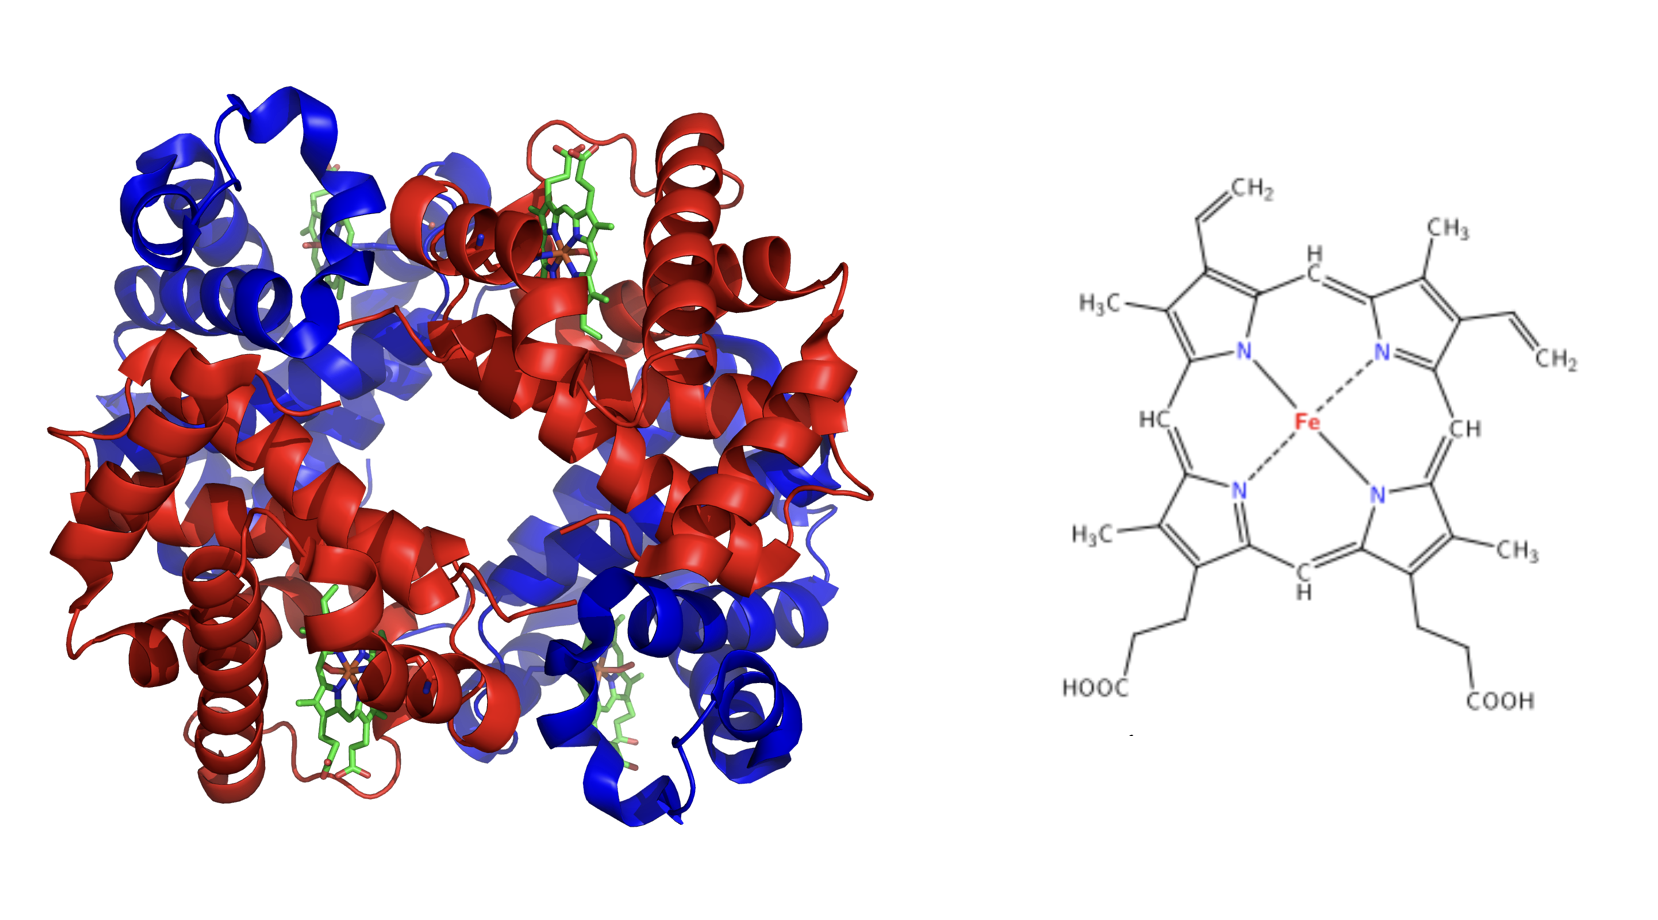 On the left the structure of hemoglobin includes four globular peptides (shown in blue and red), that come together to form the protein hemoglobin. Each of these peptides has an iron-containing heme molecule in the middle (shown in green). On the right is a closer look of the heme complex which is composed of a ringlike organic compound to which an iron atom is attached in the middle.